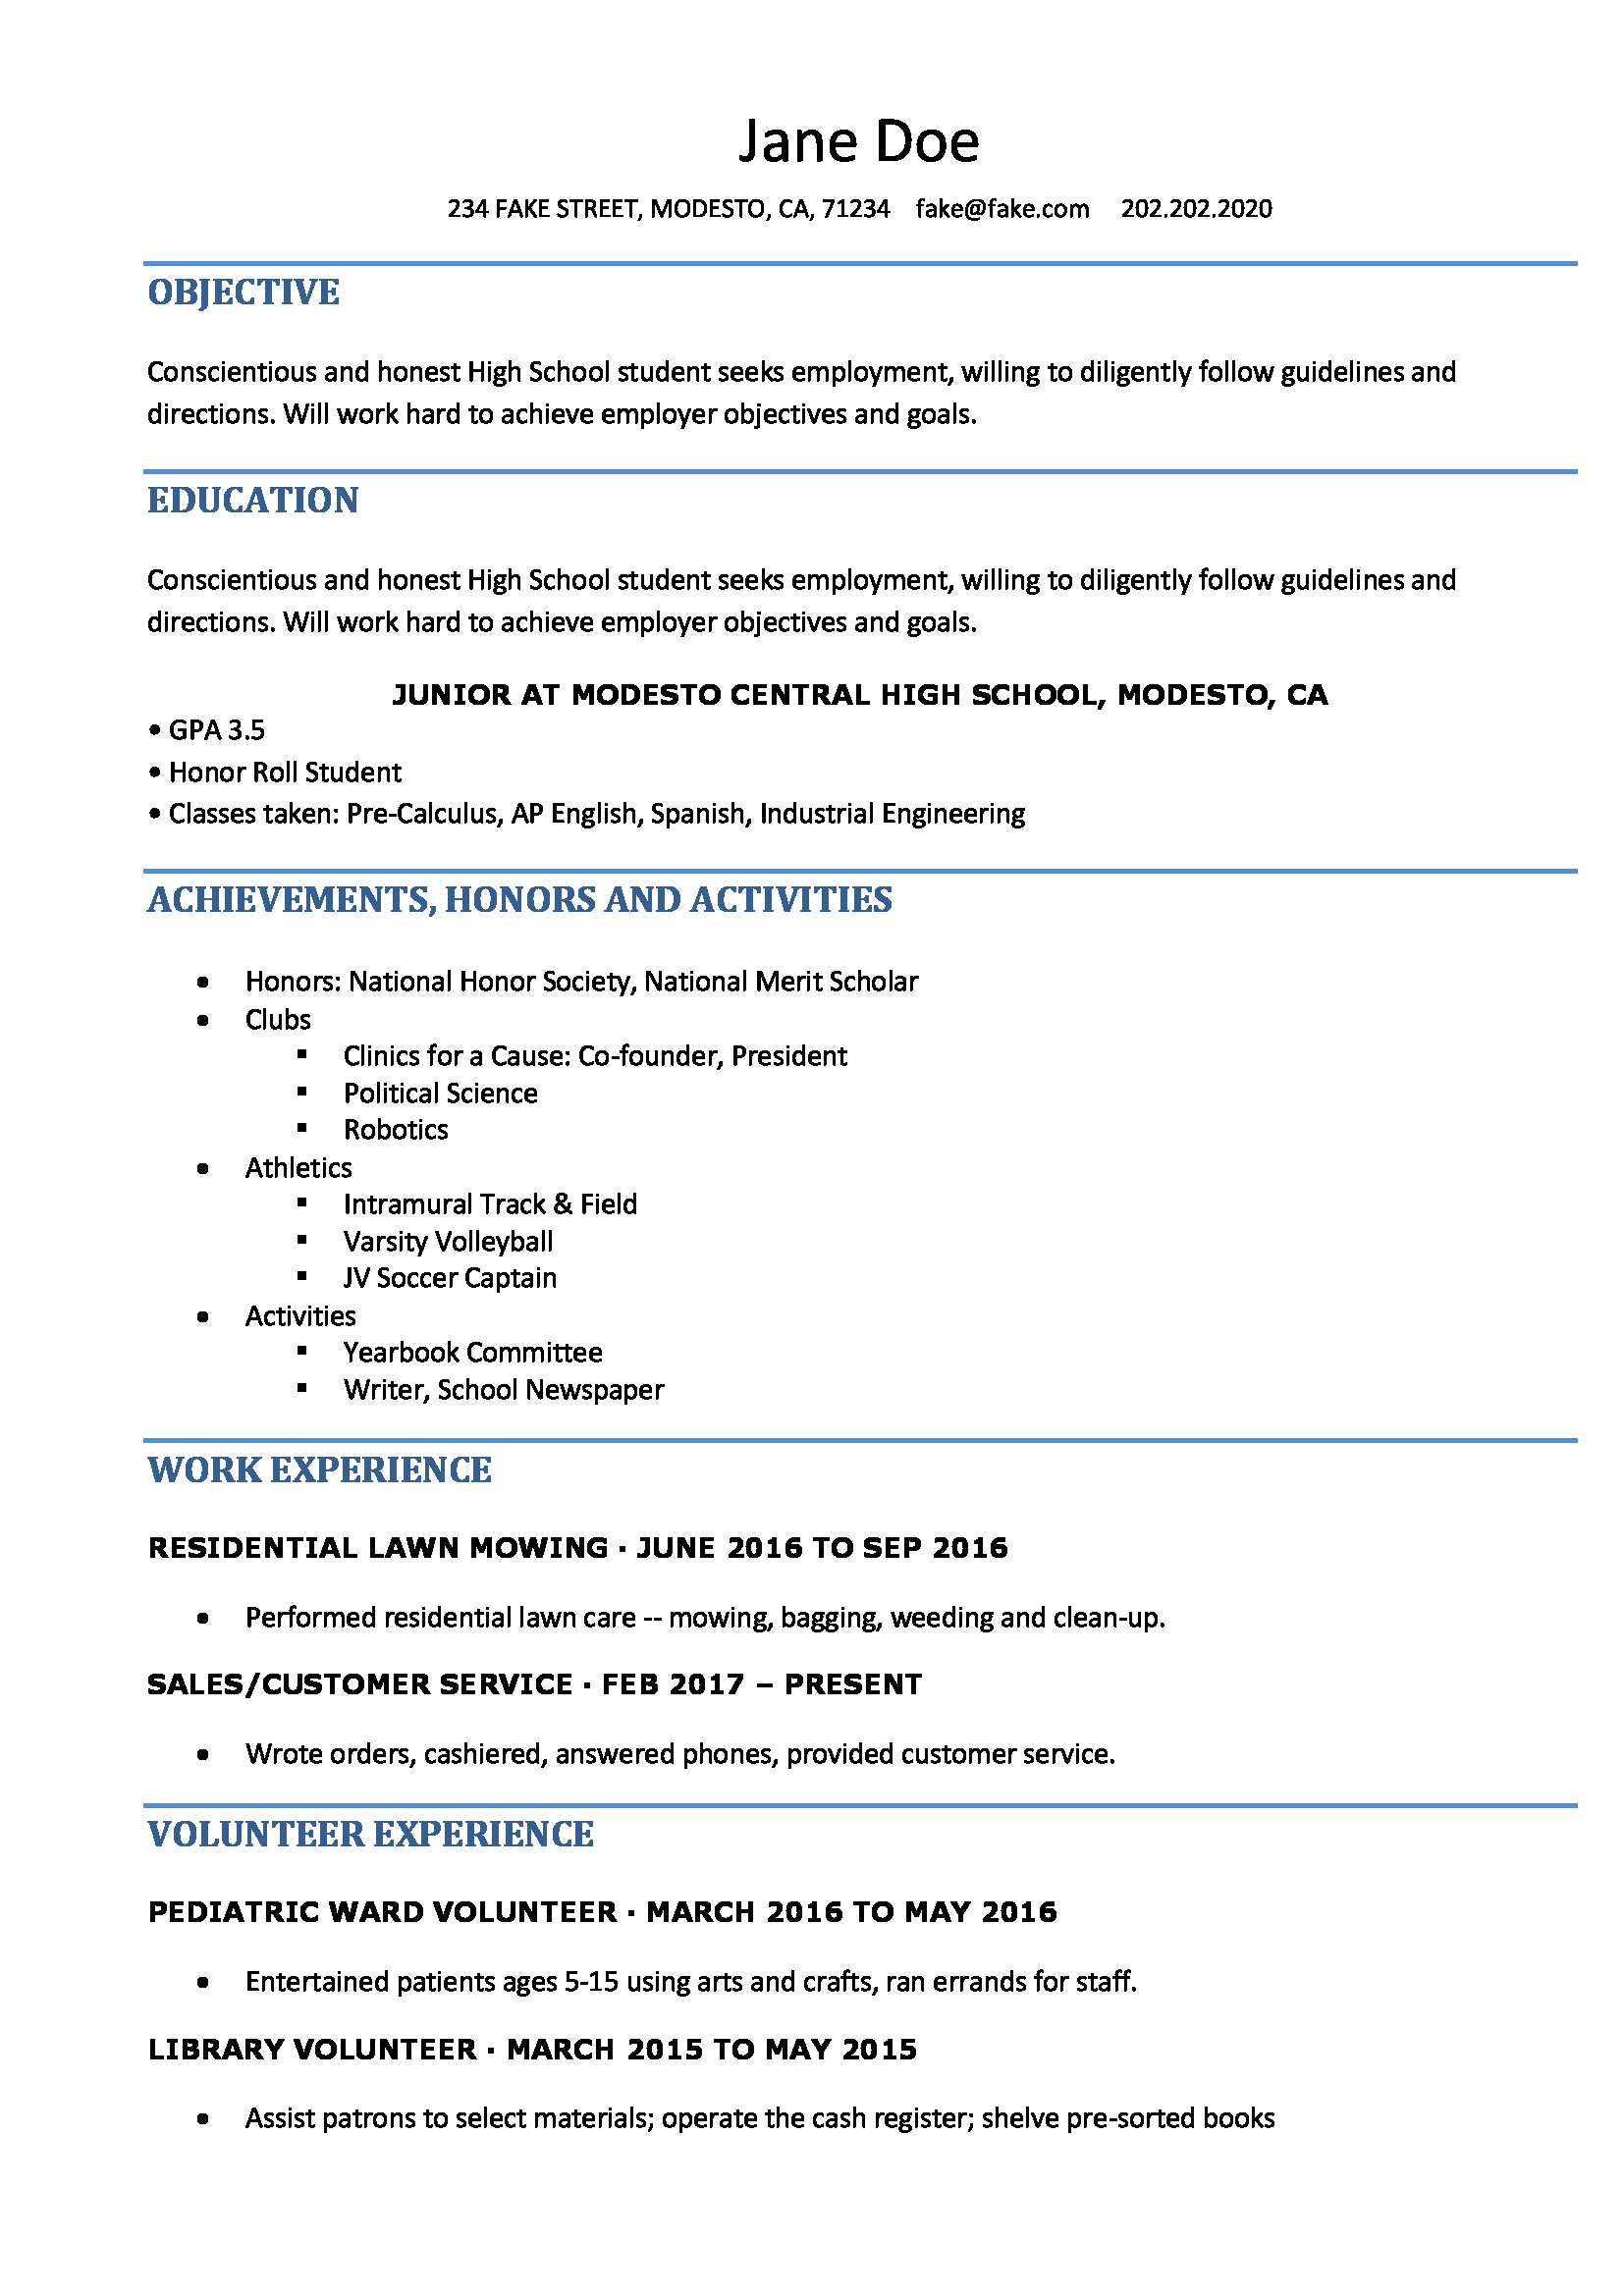 Resume Format For High School Students High school resume